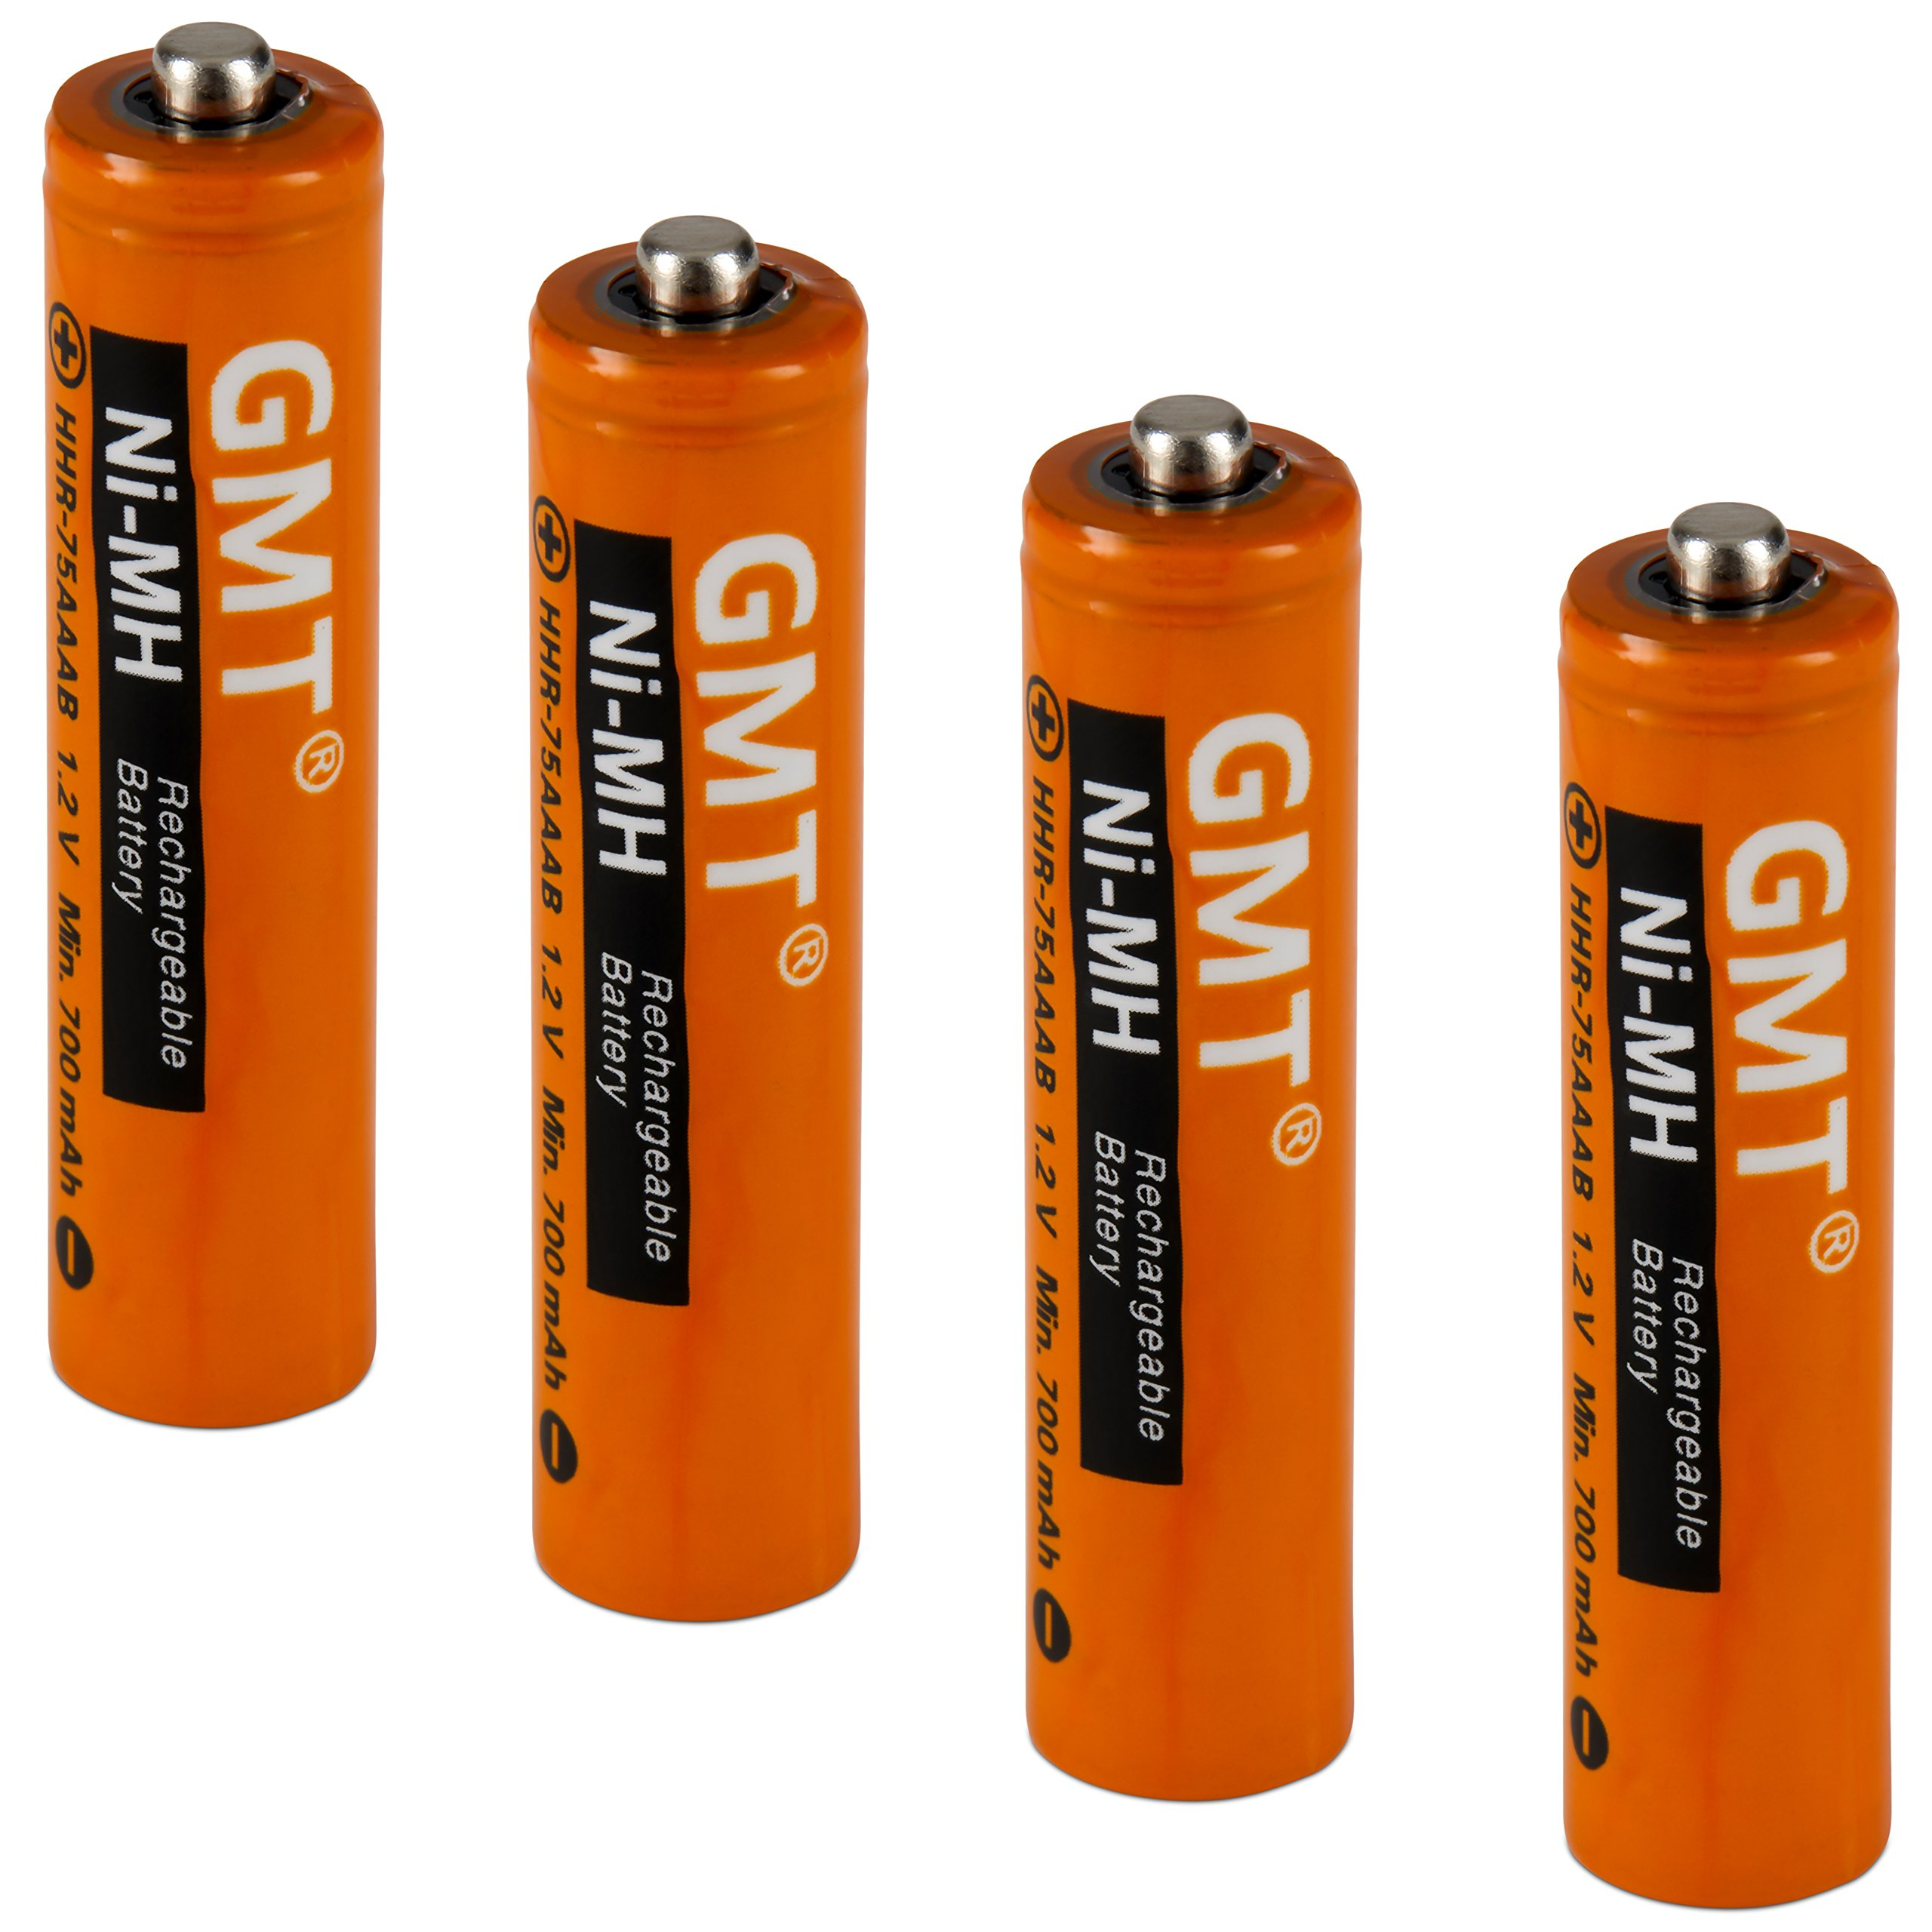 db0629a149b97e GMT Panasonic Cordless Phone Batteries NI-MH Rechargeable AAA 750mah Extra  Power (4 pack